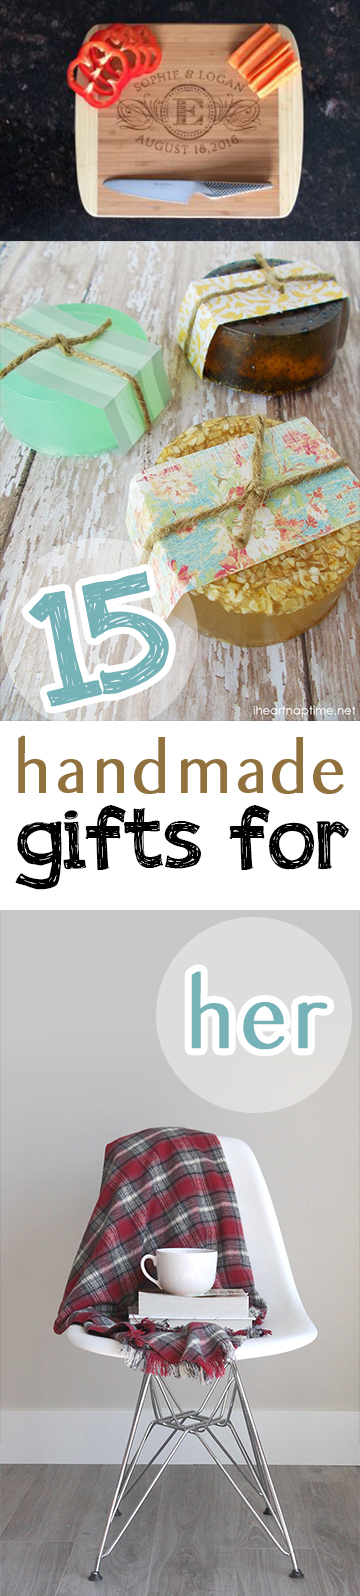 Christmas gifts, Christmas gift hacks, easy gift ideas, holiday gift hacks, popular pin, gifts, DIY gift ideas, gifts for her.